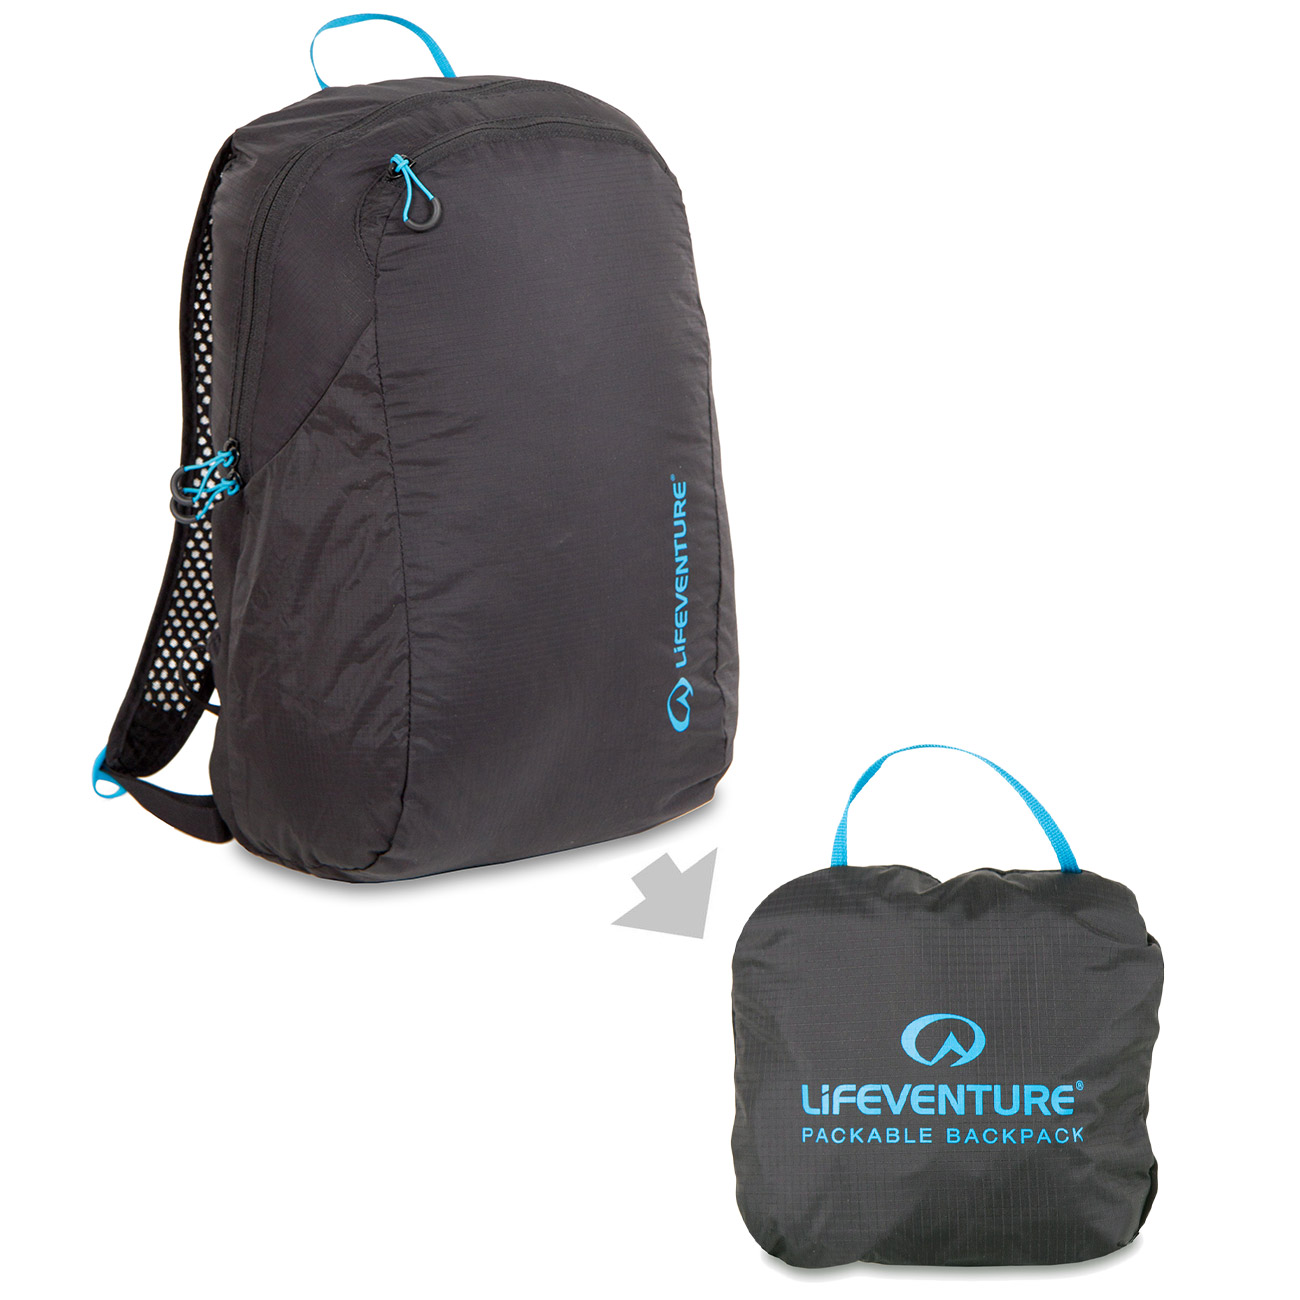 Lifeventure Rucksack Packable Backpack 16 Liter schwarz 0